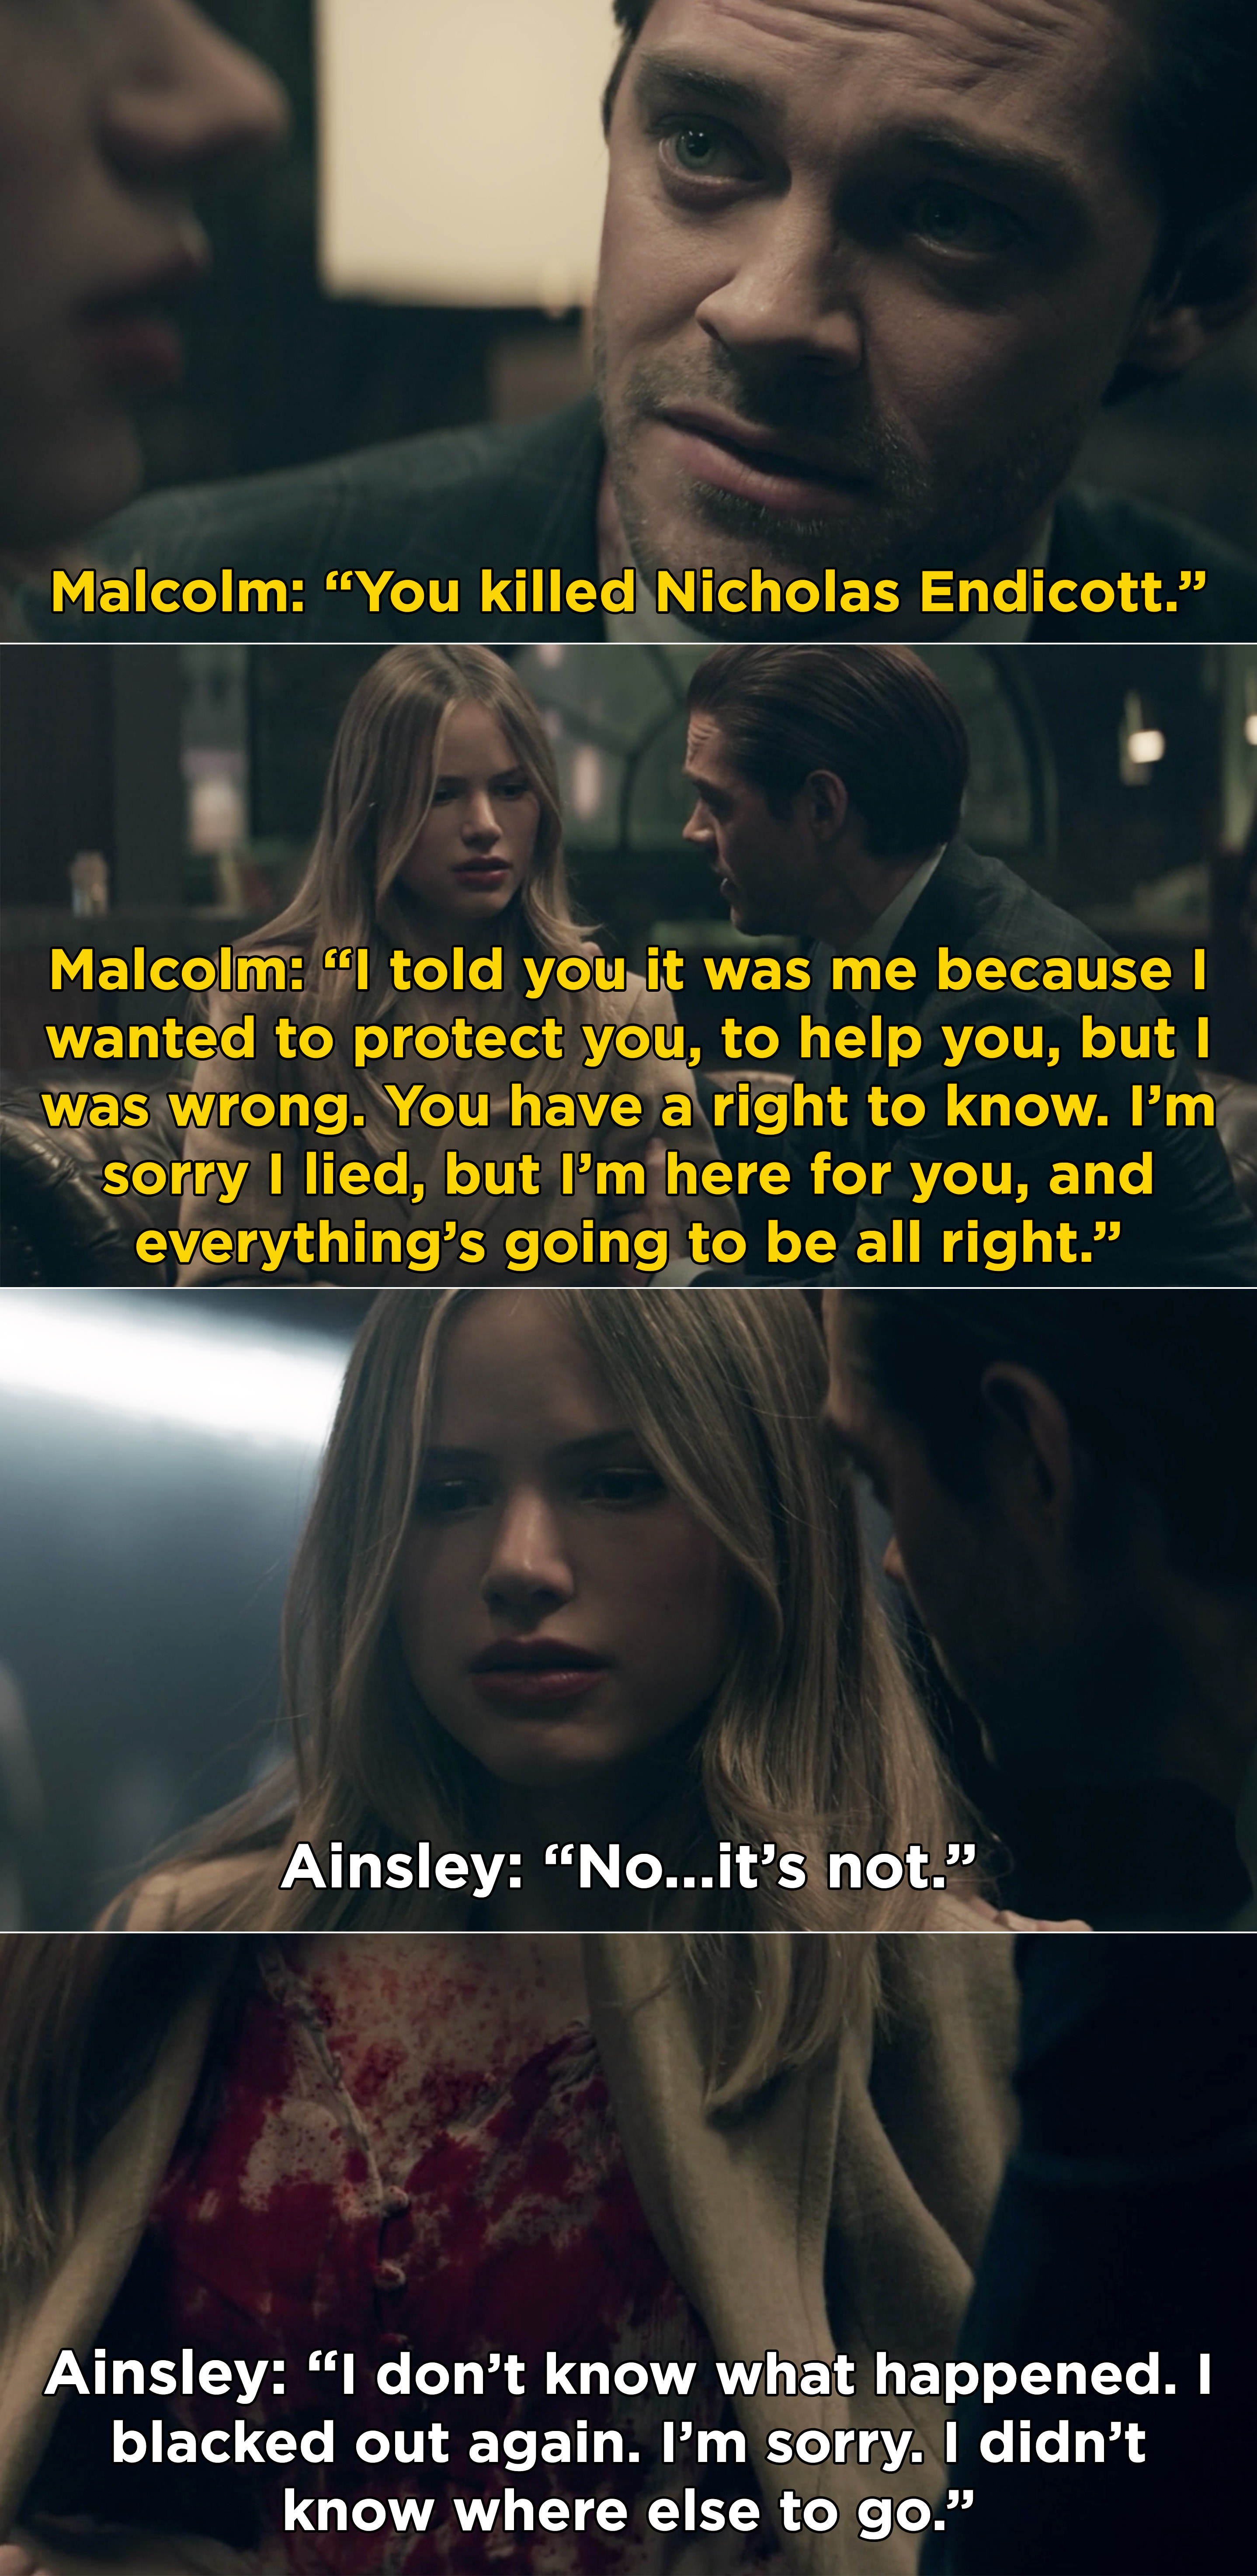 Malcolm saying that he wanted to protect Ainsley that's why he lied about Nicholas. Then, Ainsley opening her coat and revealing blood all over her white shirt